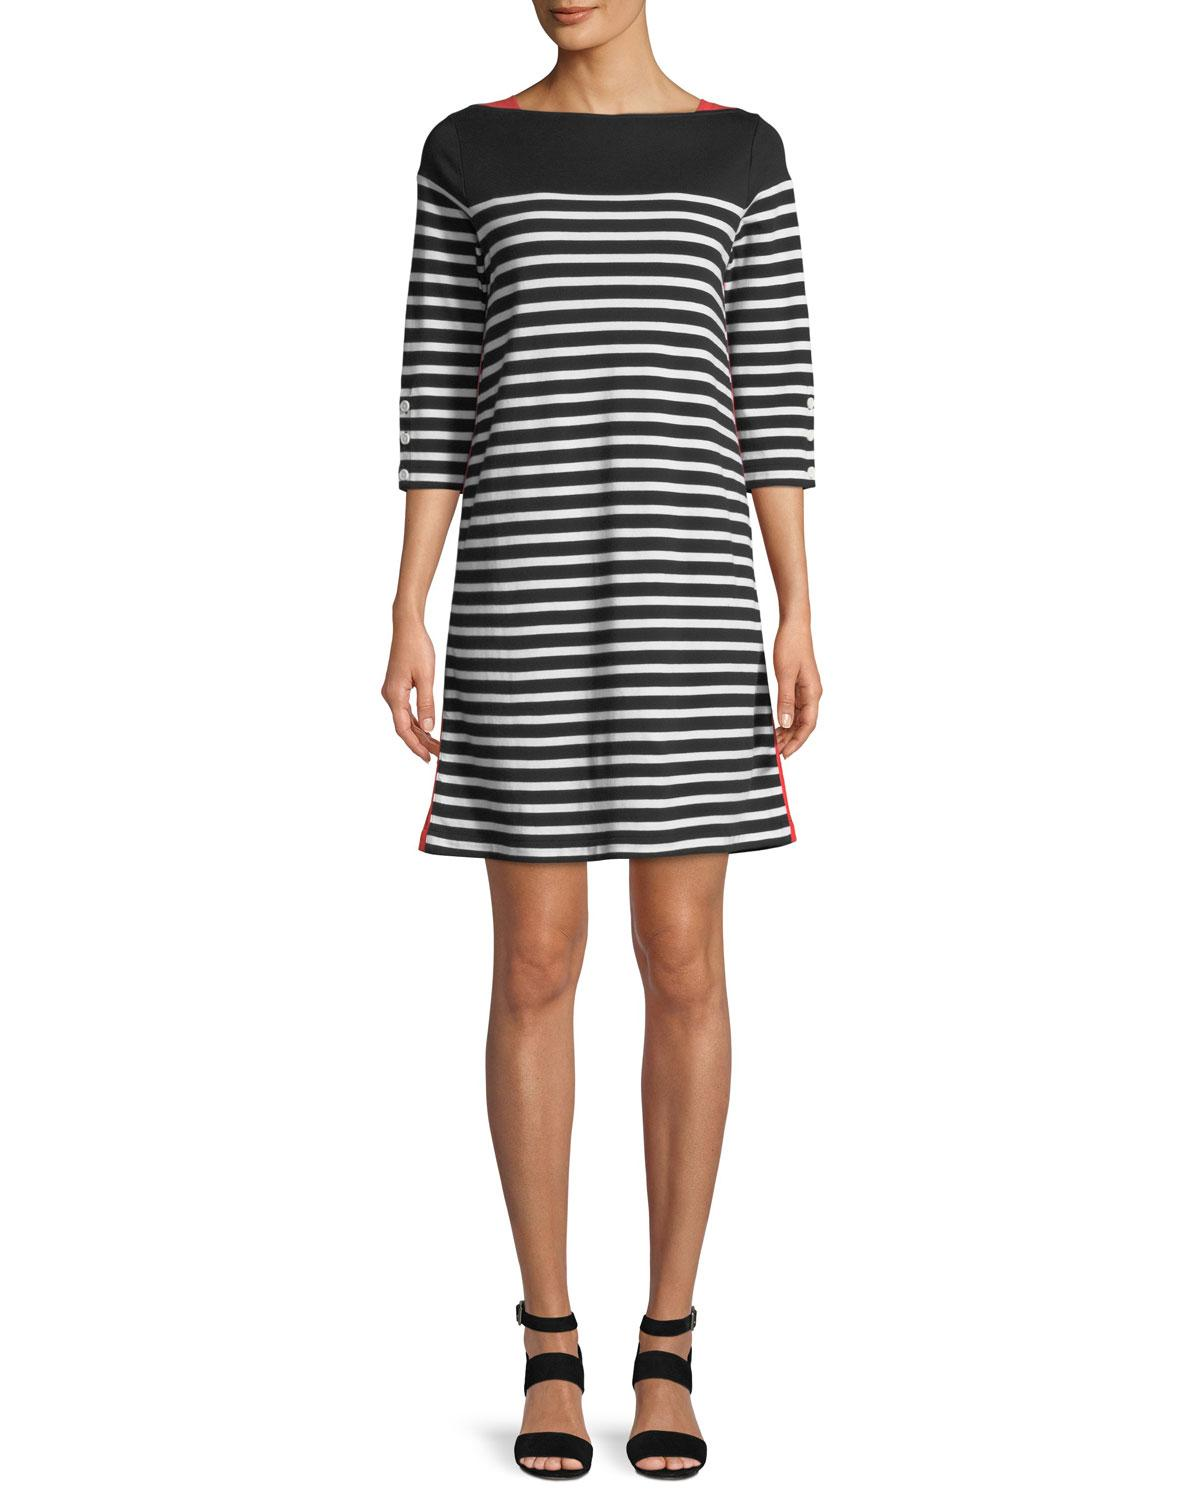 Plus Size Colorblock Striped 3/4-Sleeve Dress in Black/White